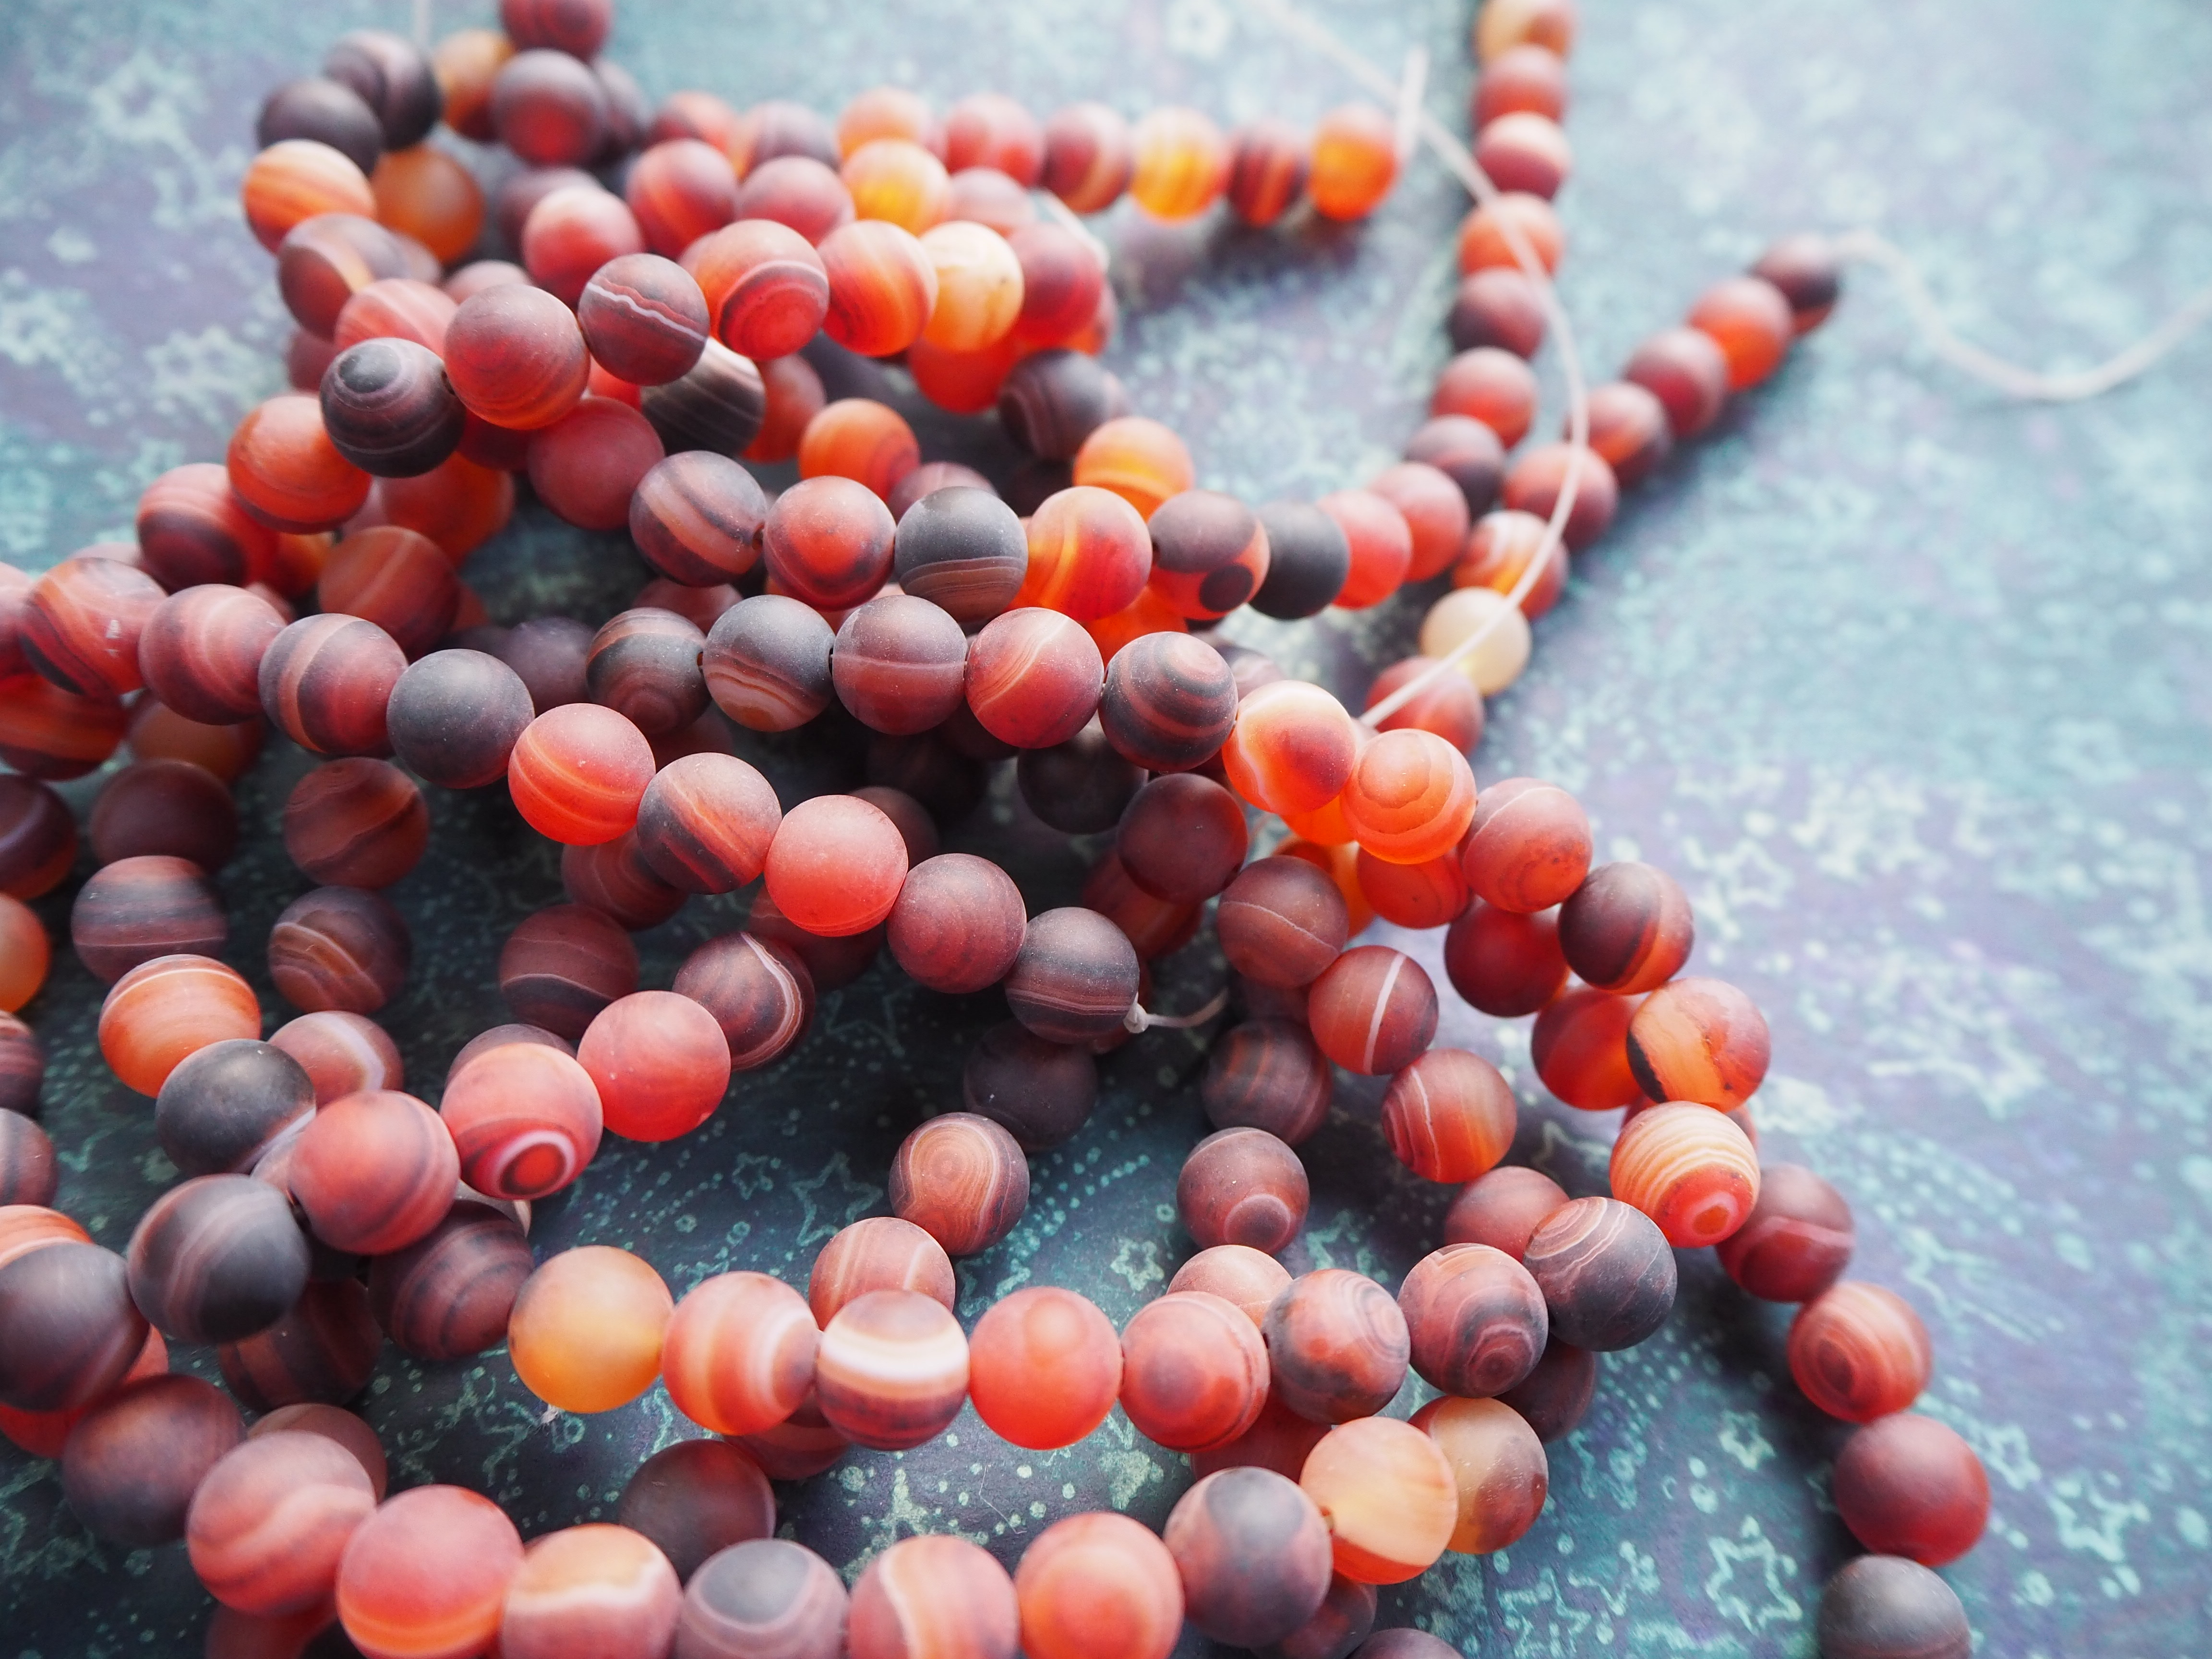 Full Strand 8mm Frosted Matte Round Red Striped Agate Beads 47 Beads